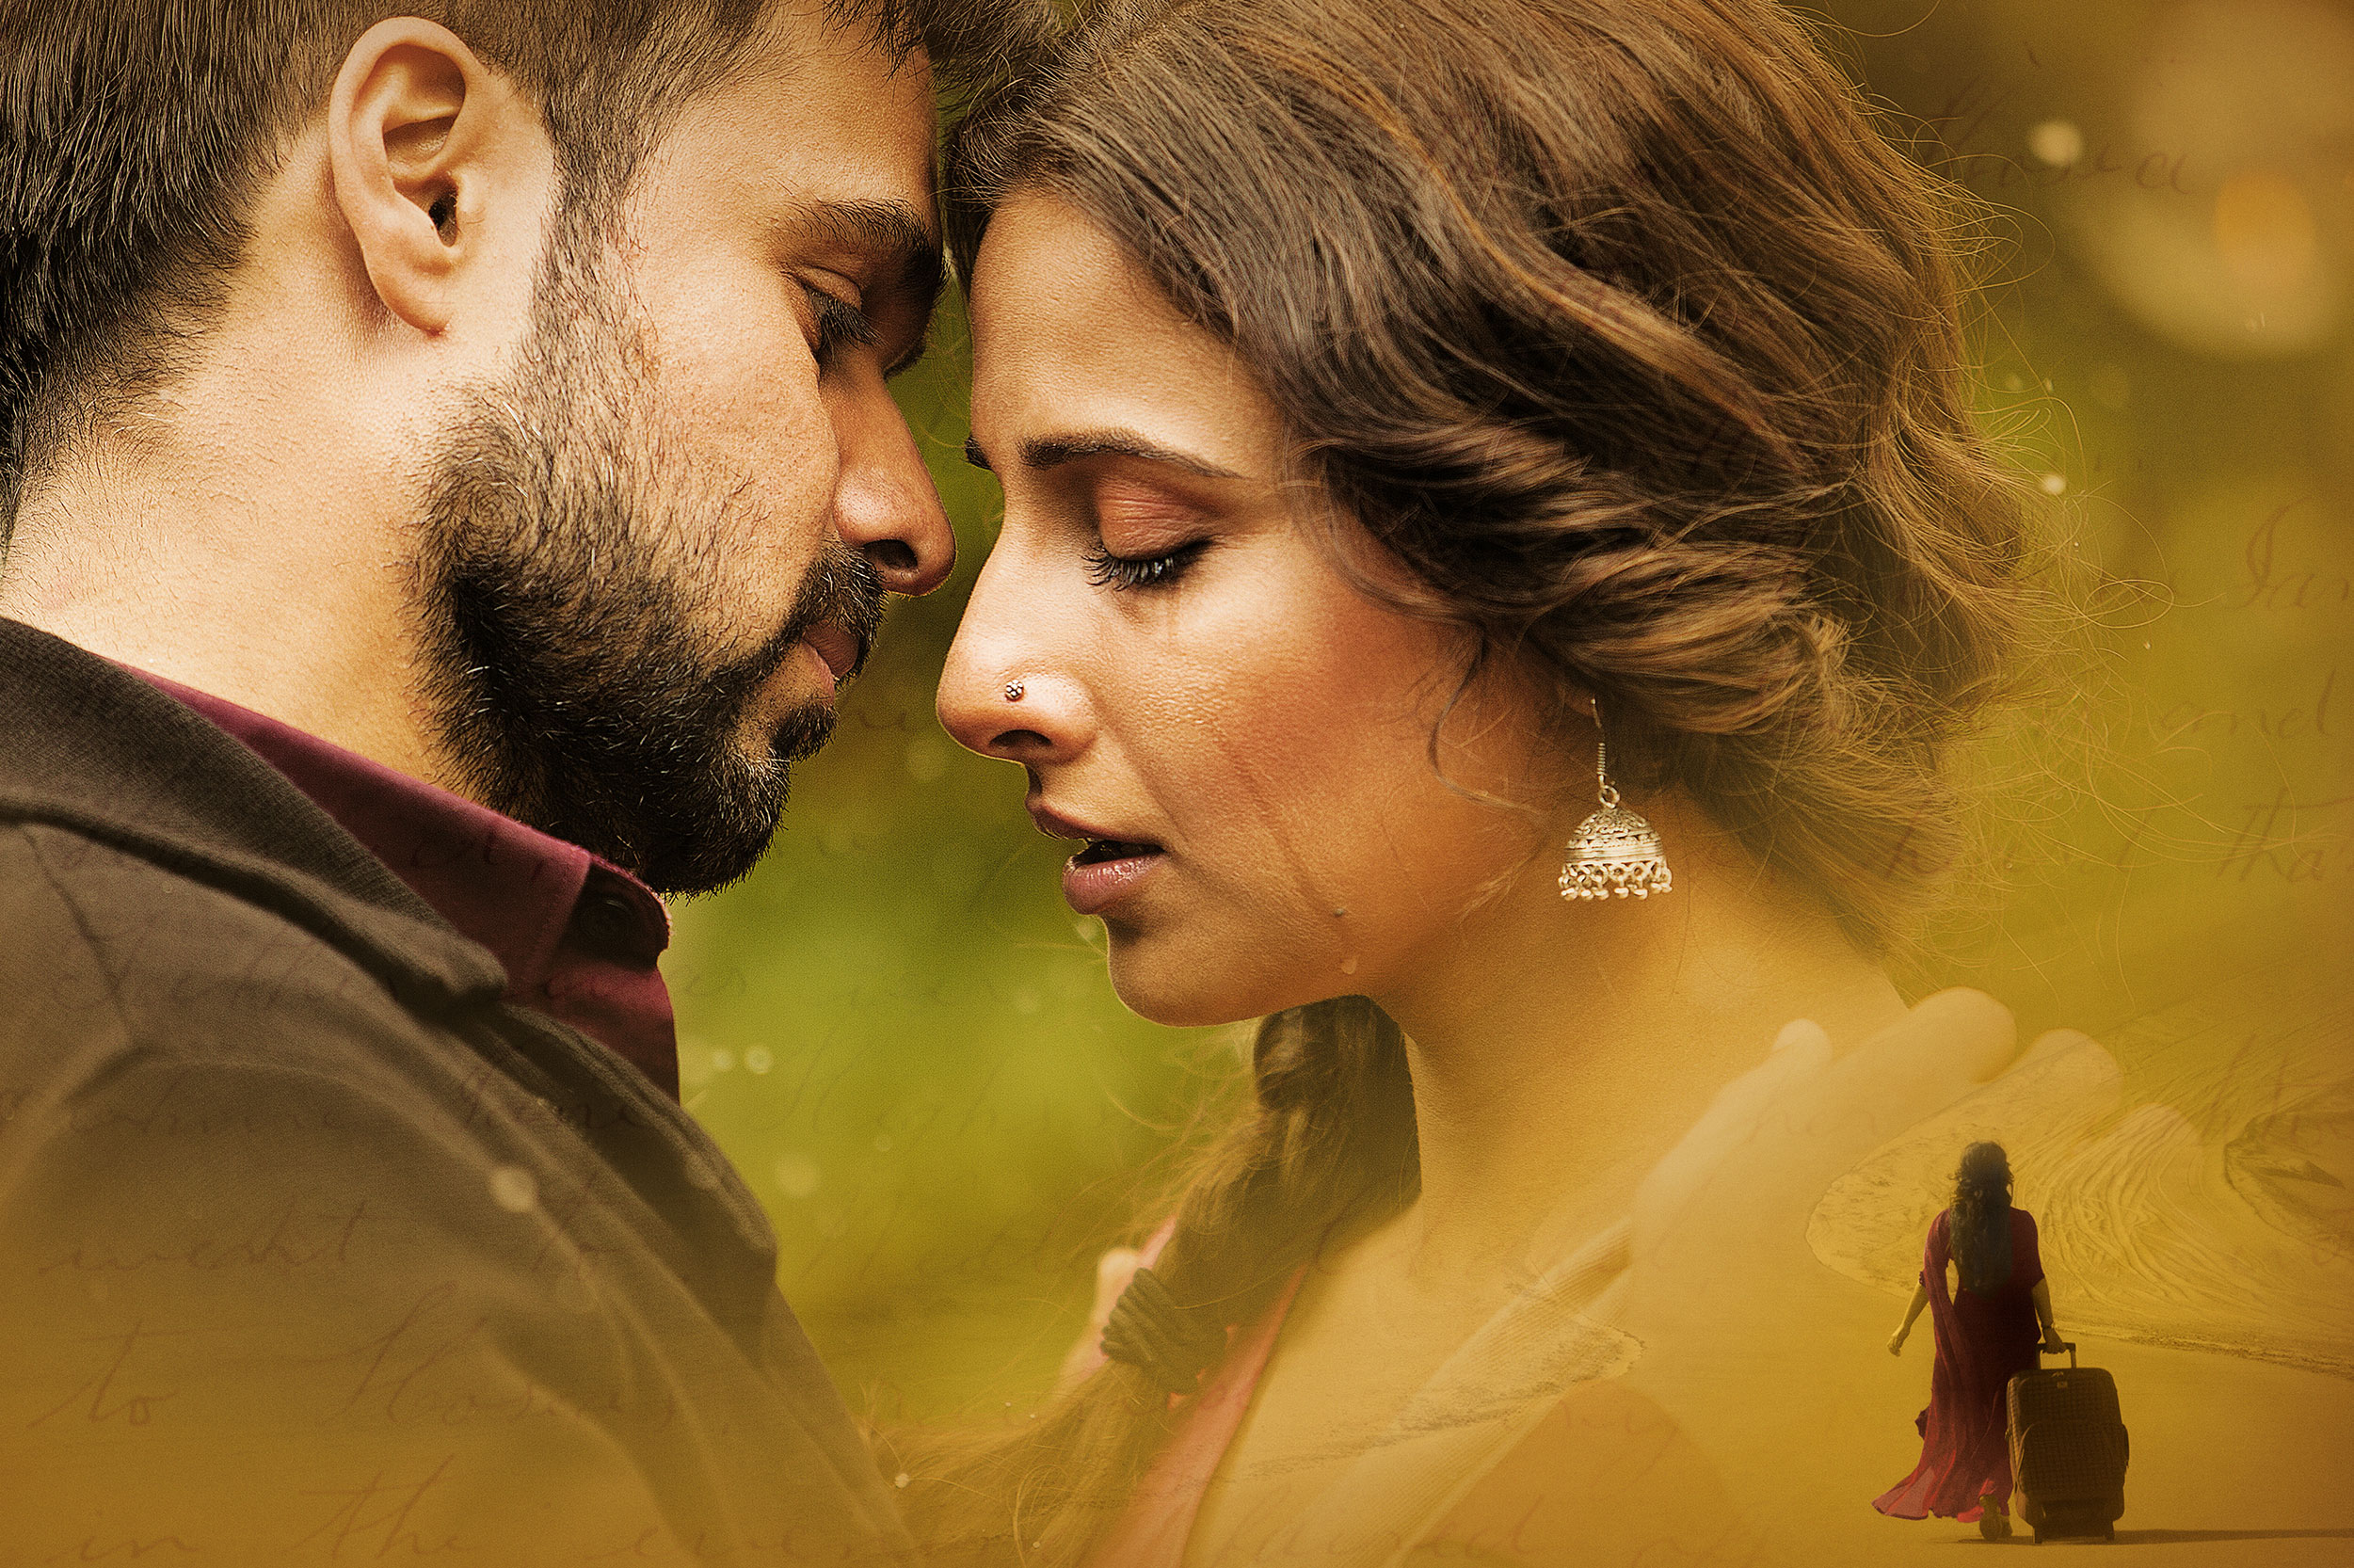 International Indian movies distribution – Hamari Adhuri Kahani